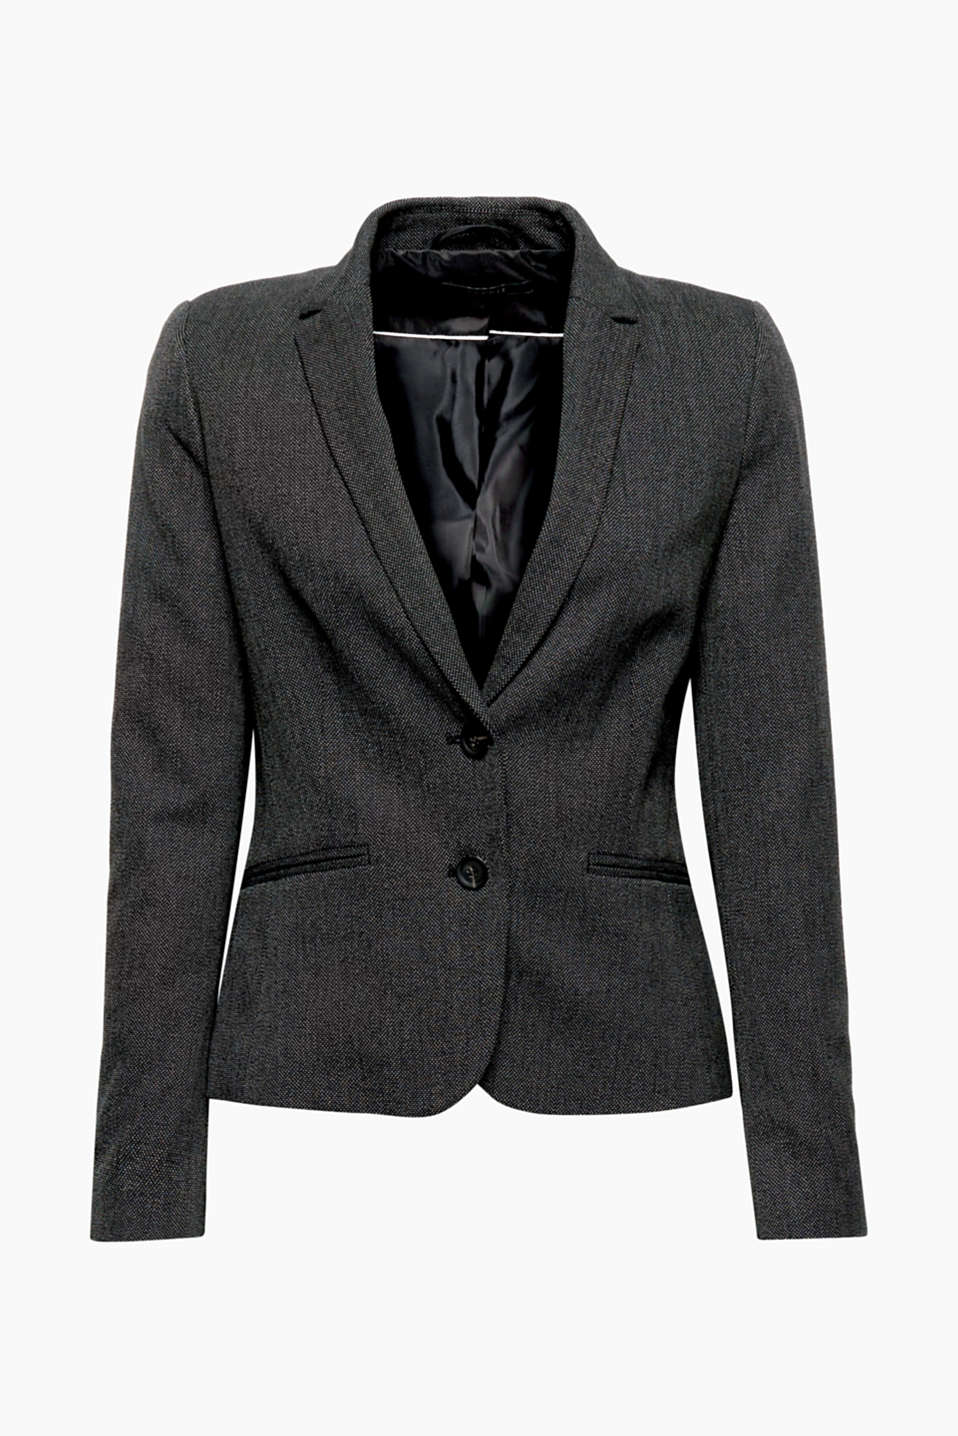 The fine texture in a two-tone look makes this fitted stretch blazer the perfect business partner!